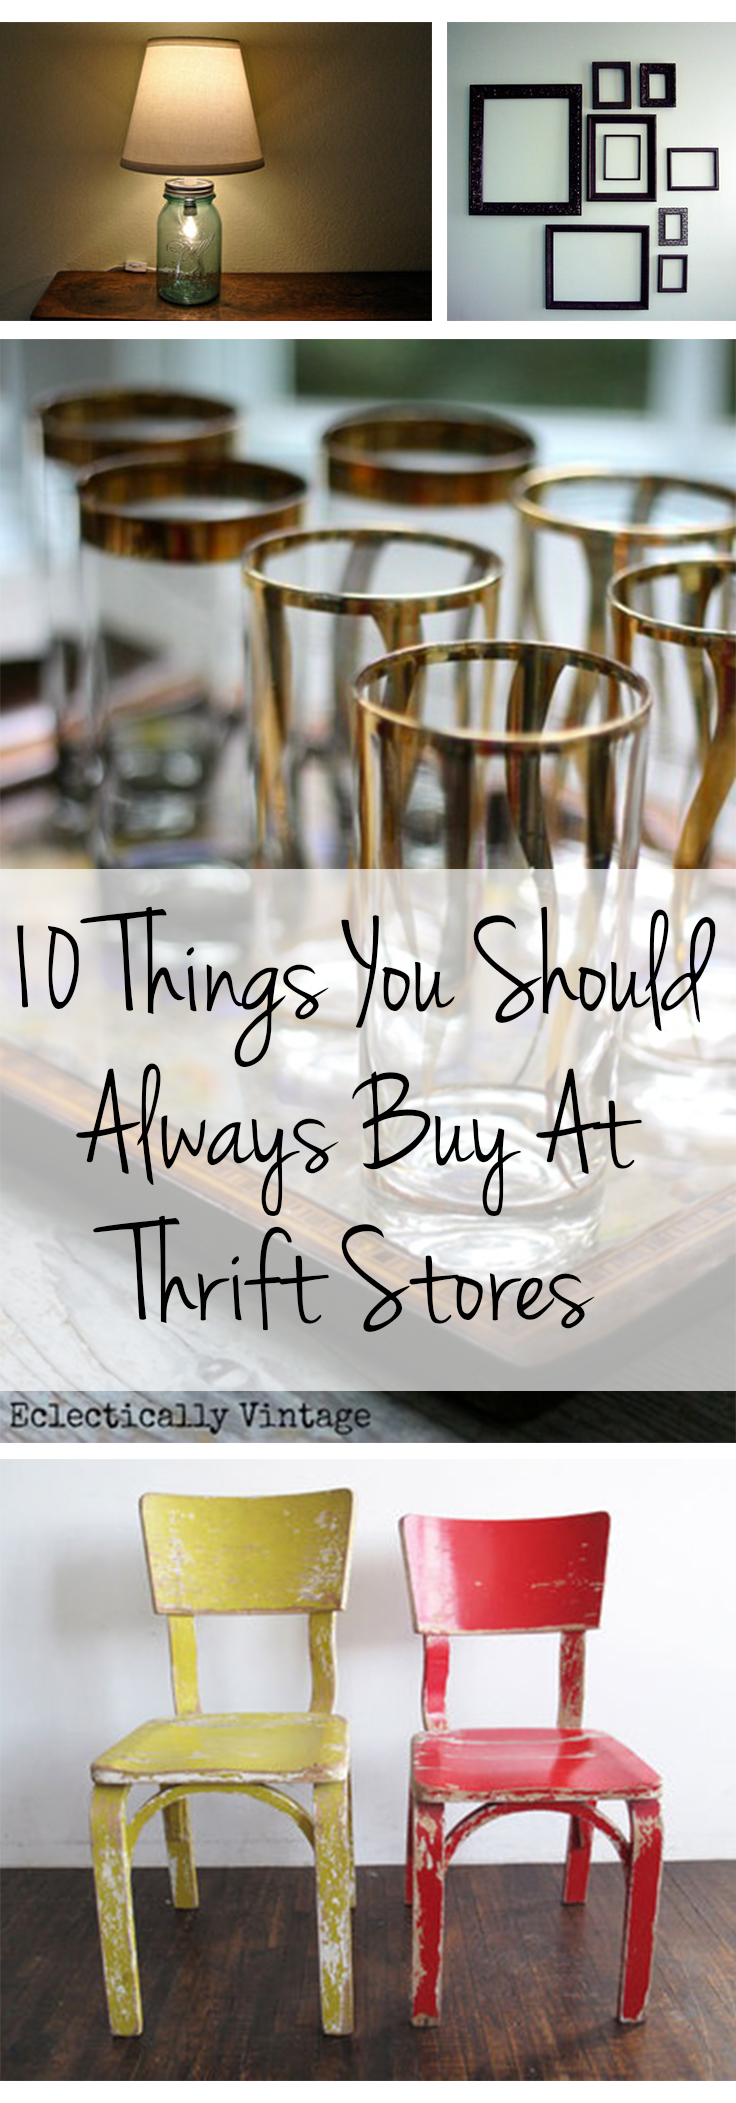 thrift store shopping shopping hacks thrift store hacks thrift store furniture popular